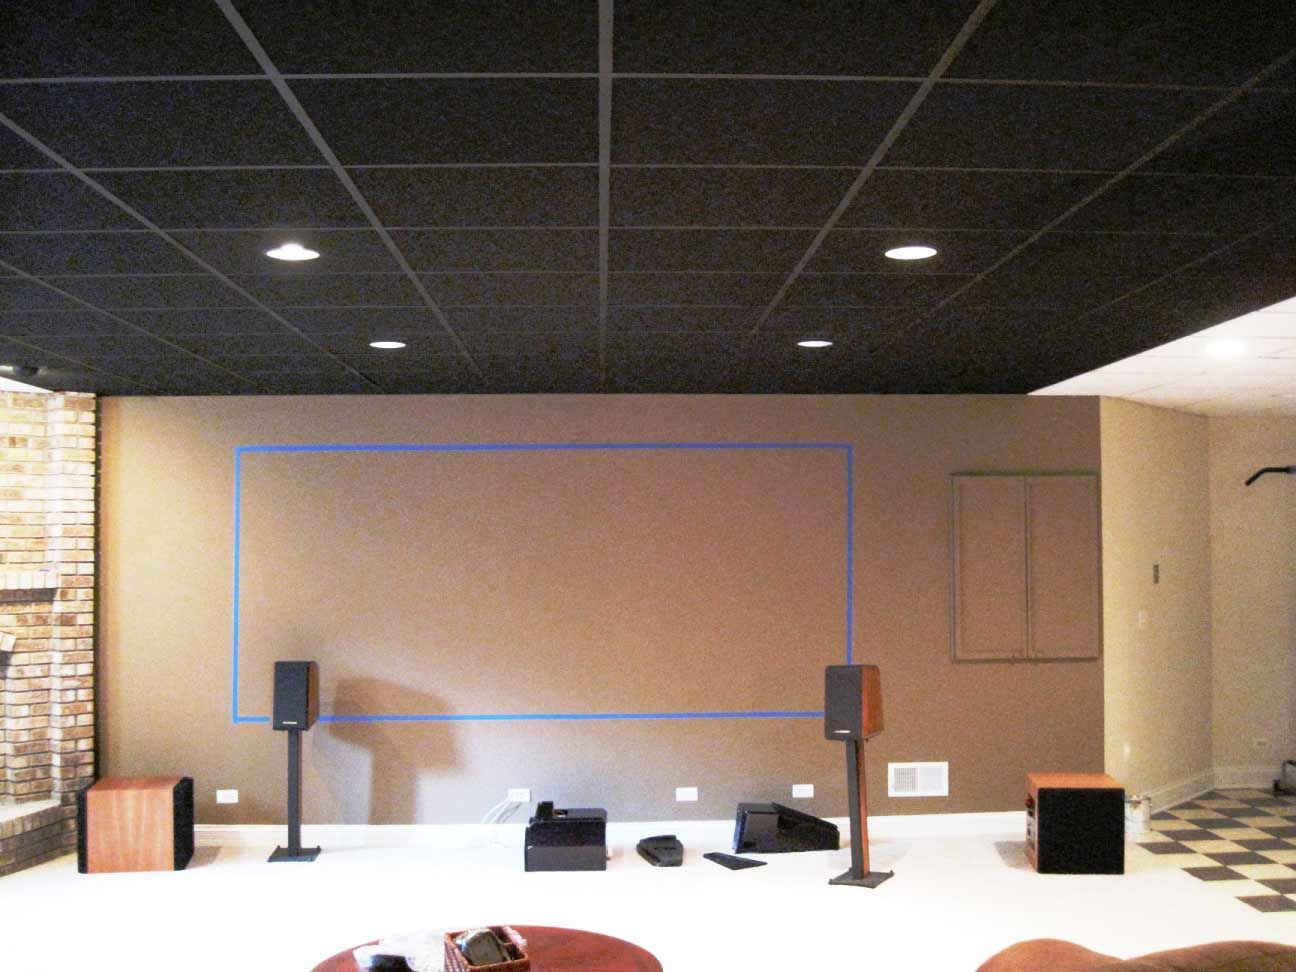 Painting Ceiling Tiles Black Google Search Home Theater